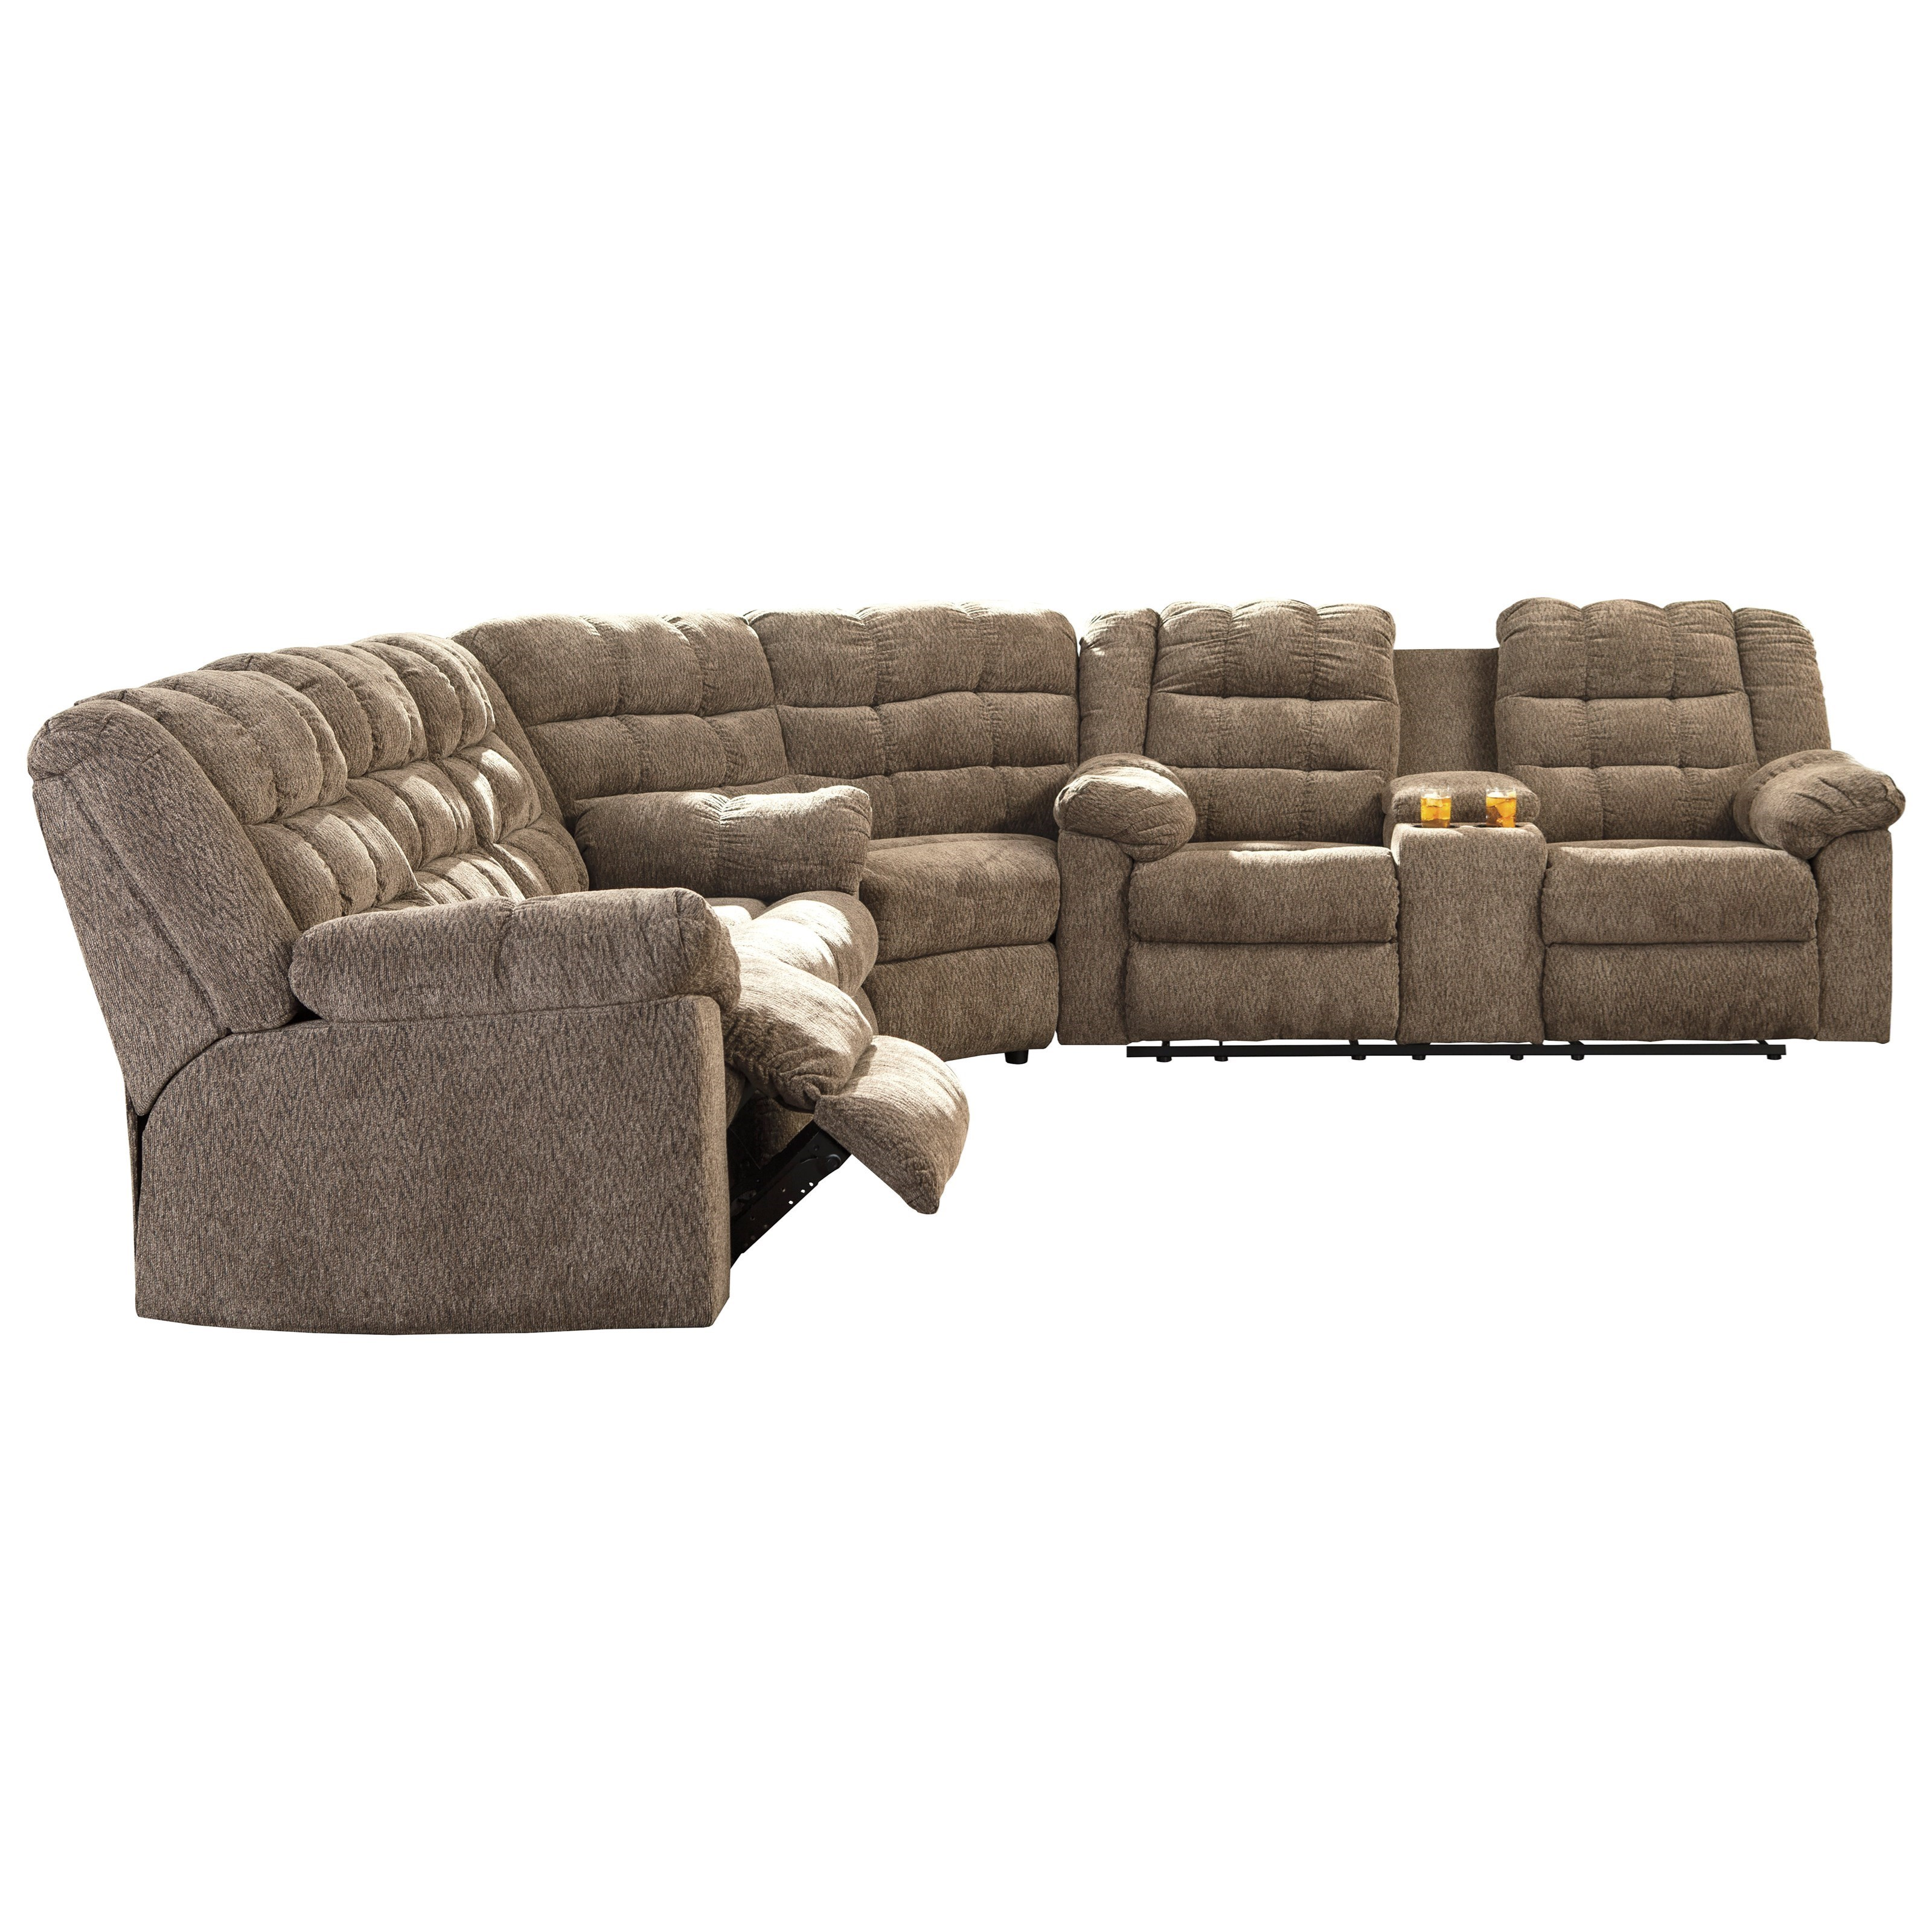 Signature Design By Ashley Workhorse 3 Piece Sectional With Wedge